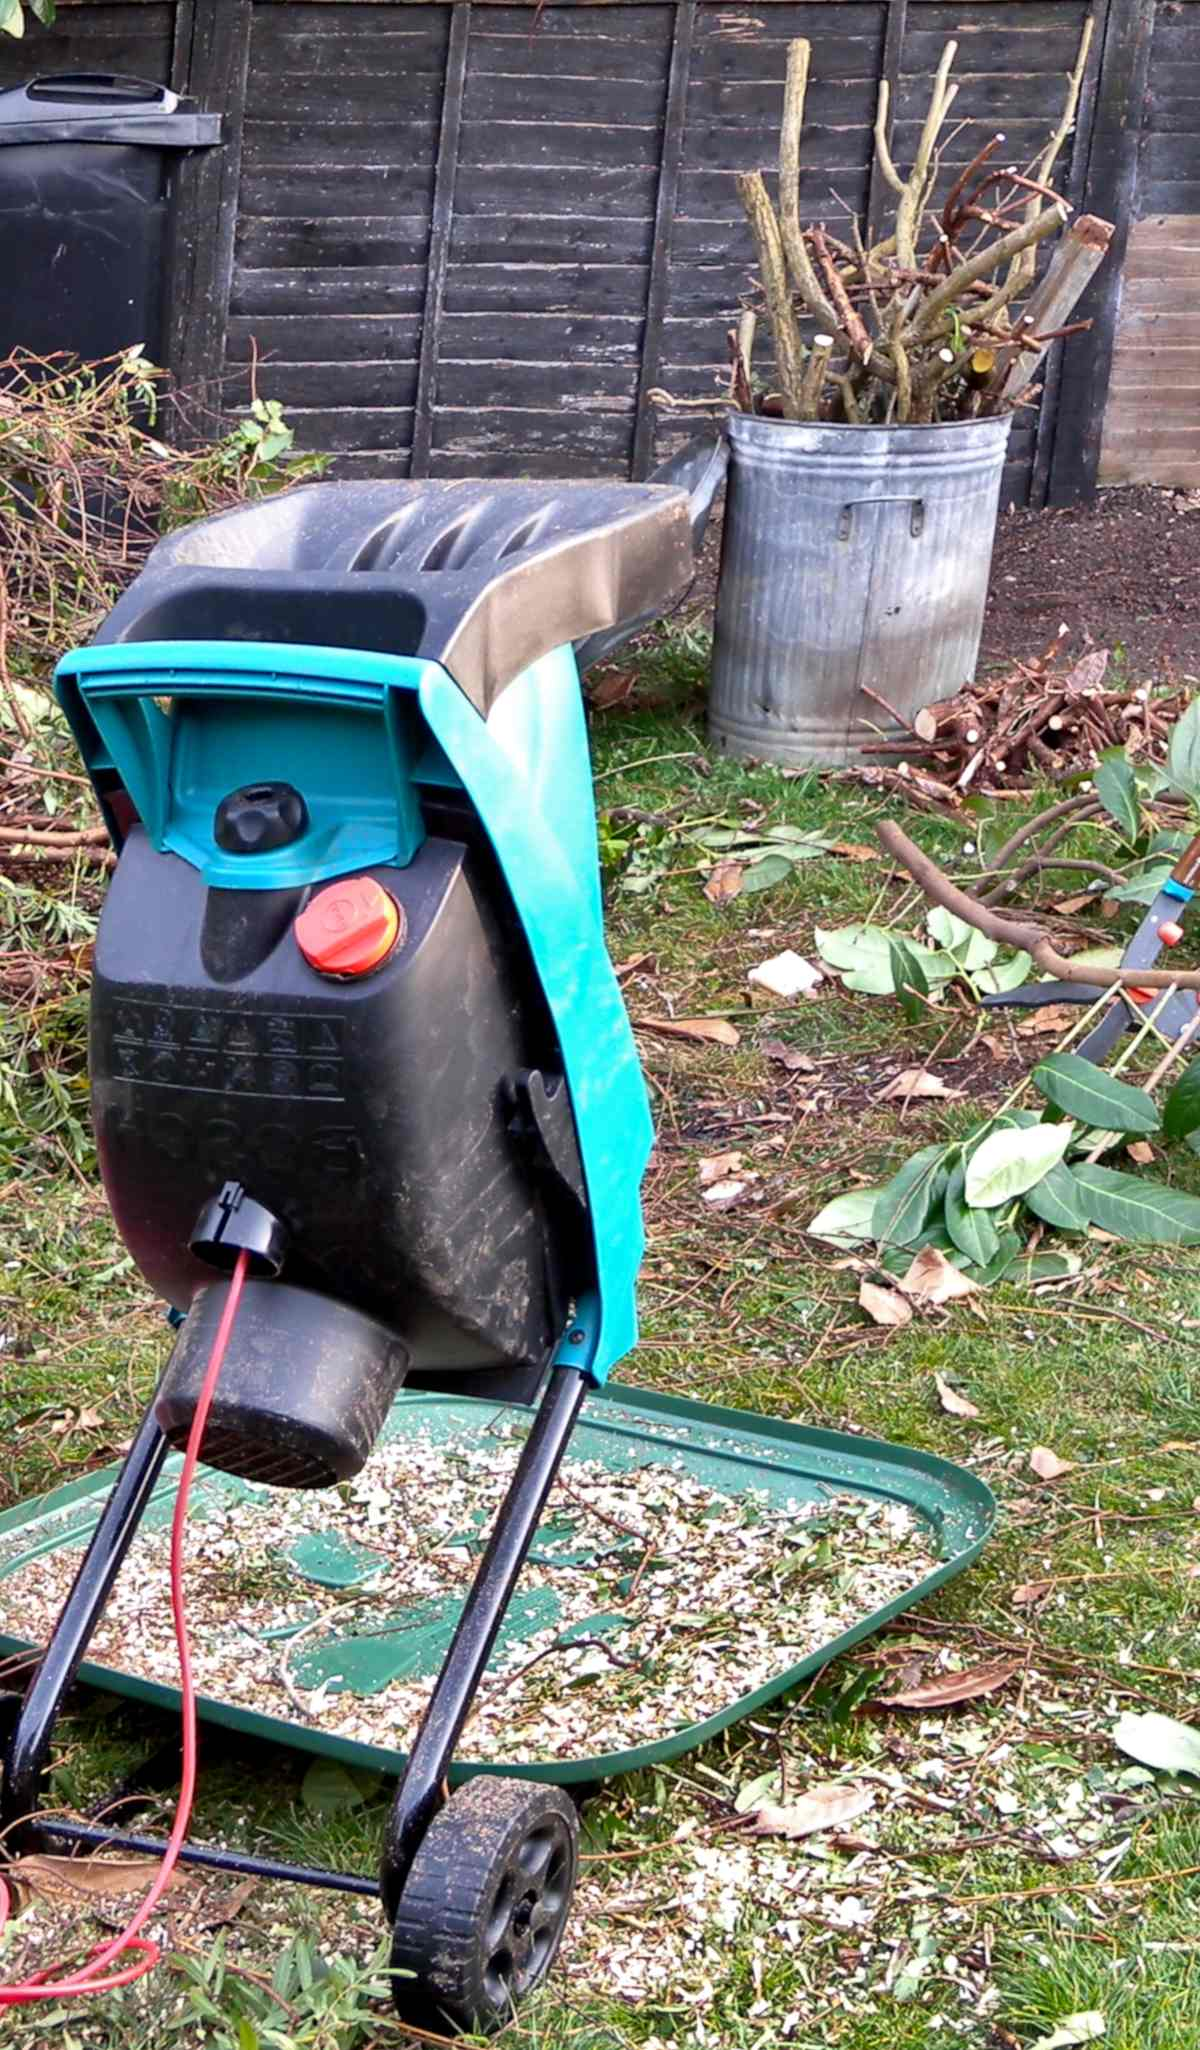 Shredder and composter, how to make the right choice